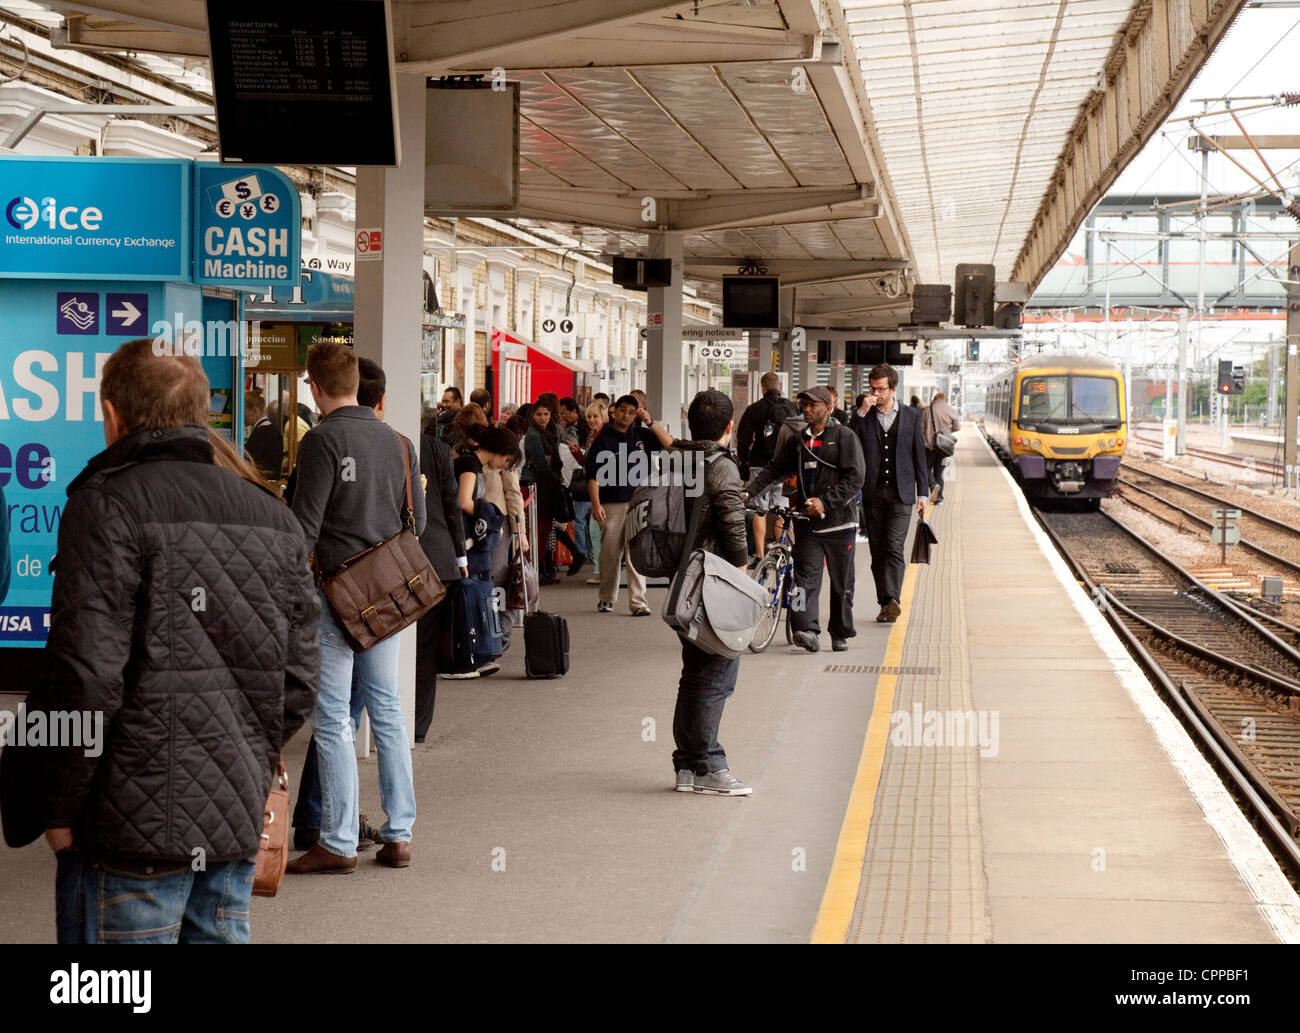 Rail travellers waiting for a train on the platform at Cambridge station, Cambridgeshire UK - Stock Image